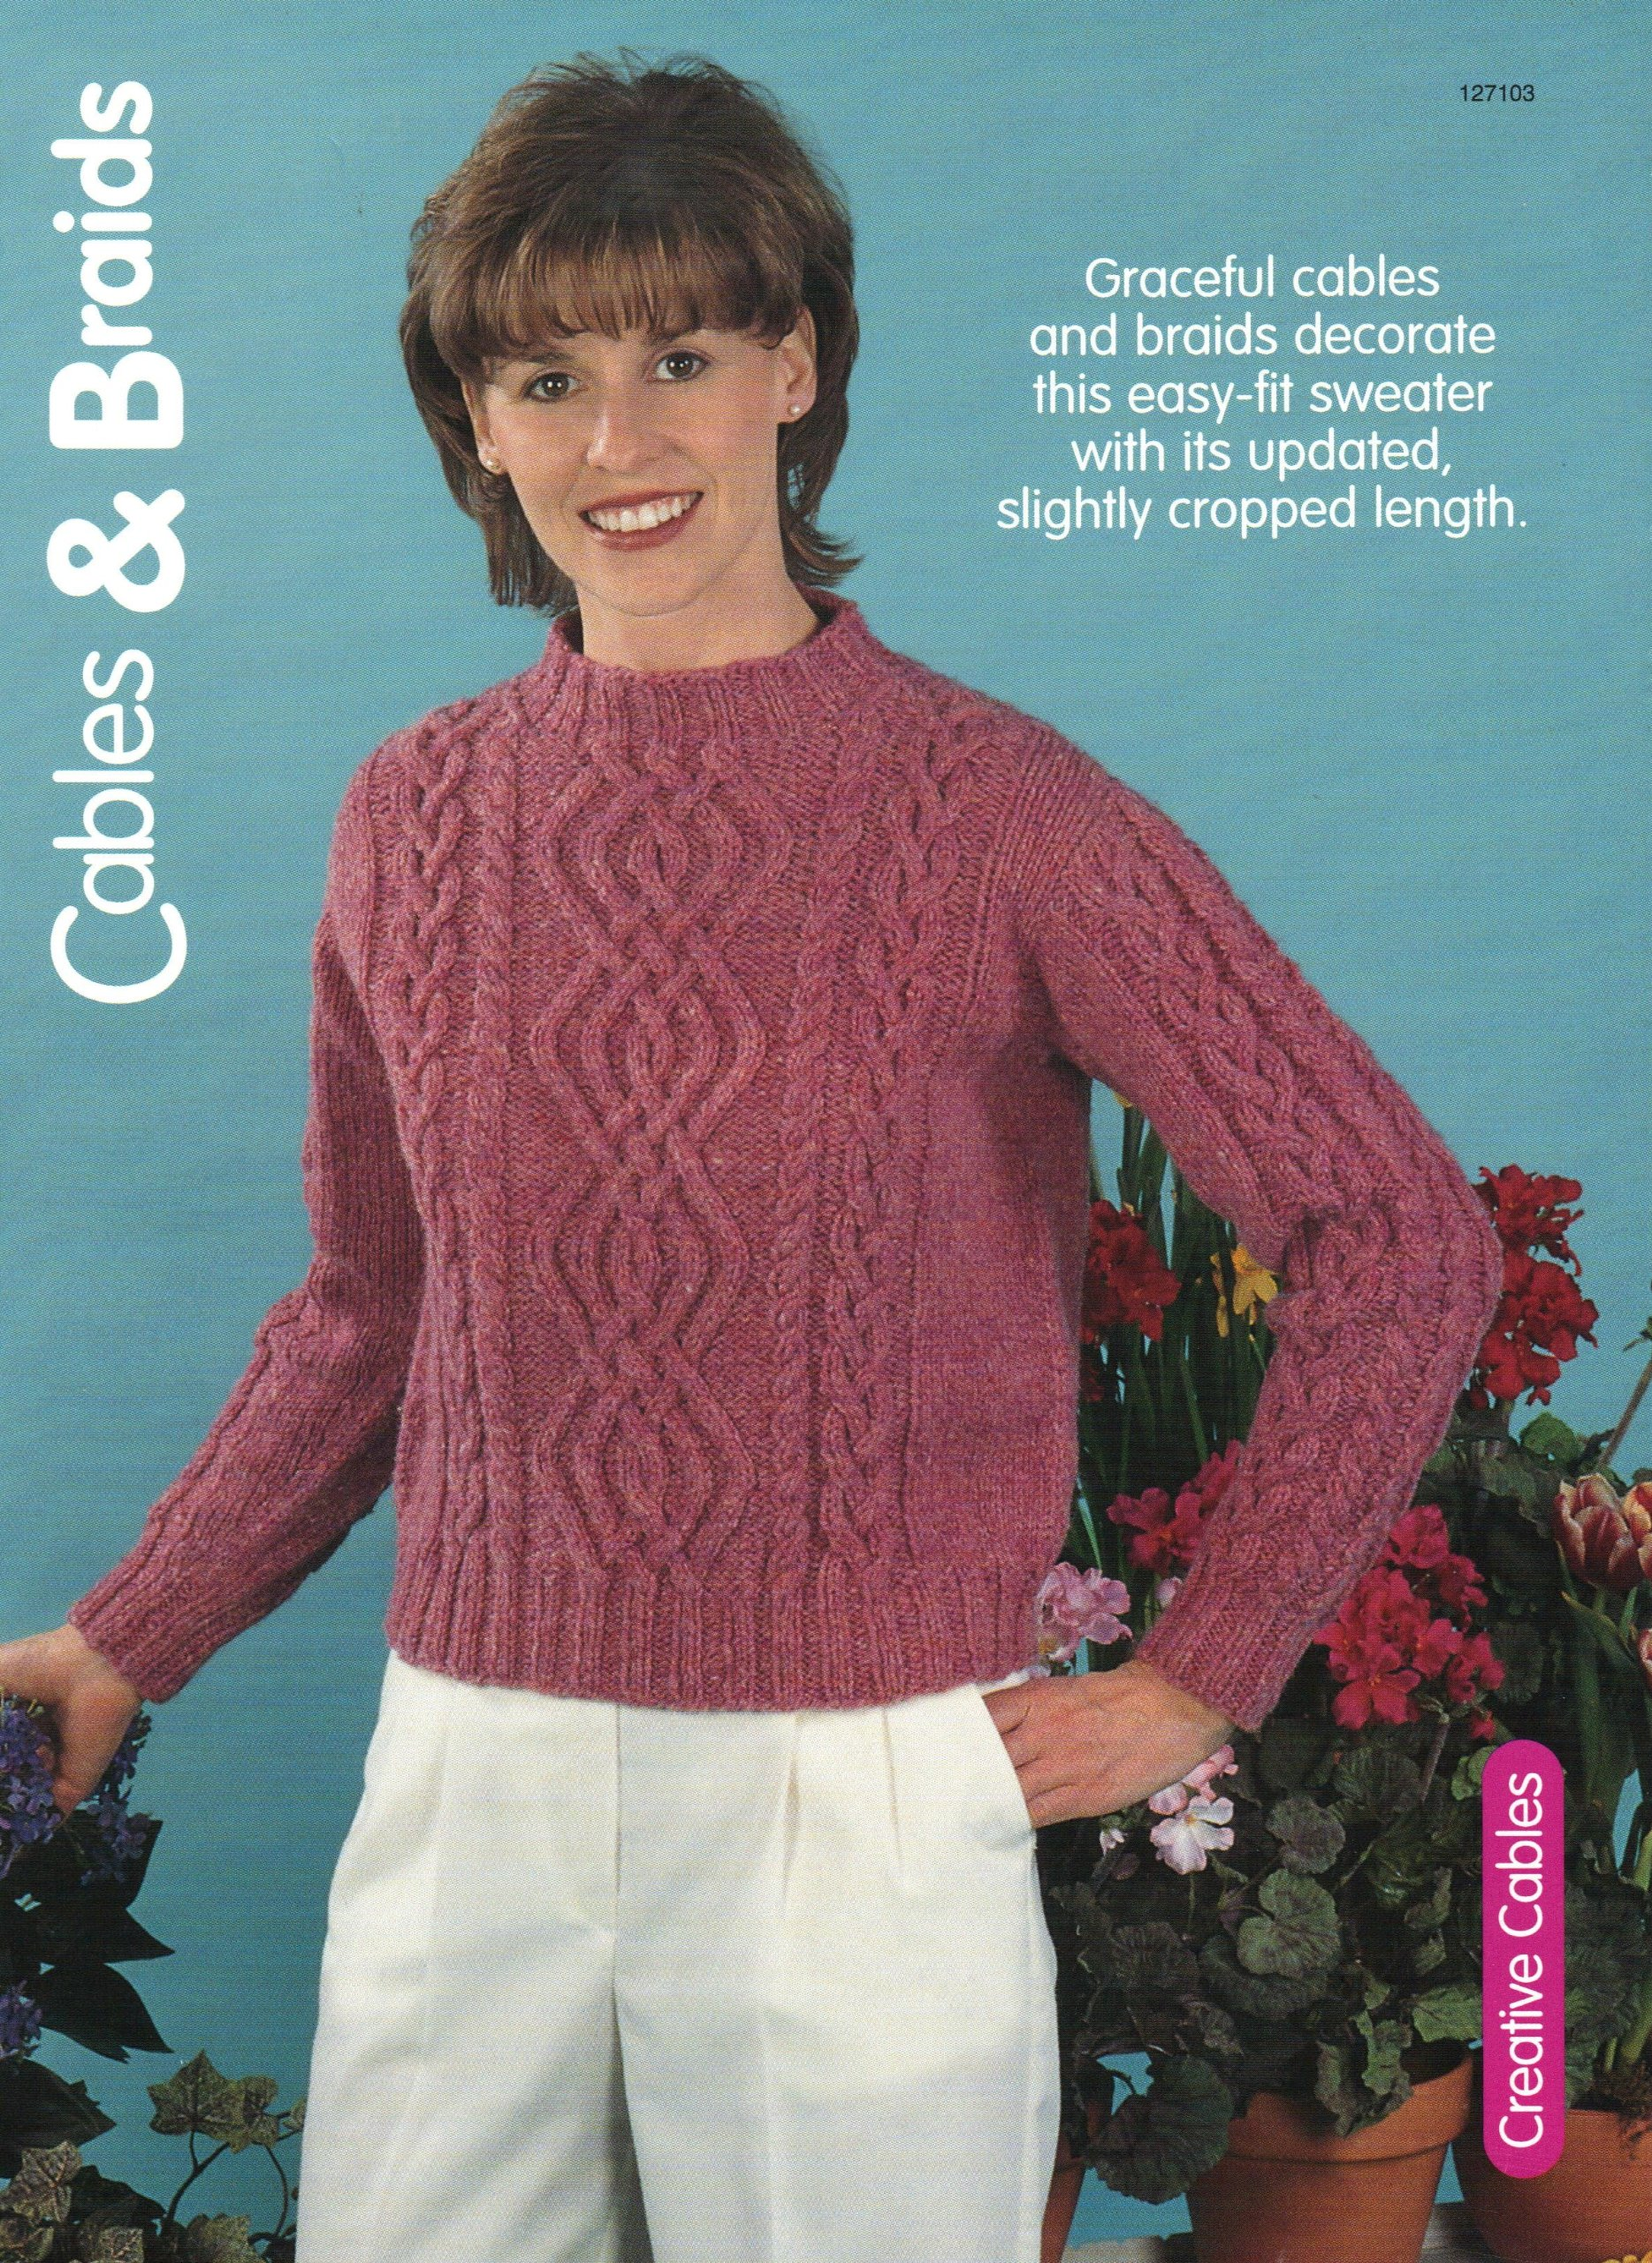 bc3d843be00f Cables and Braids - Ladies  Pullover Sweater - One Knitting Pattern for One  Sweater Pamphlet – 1999